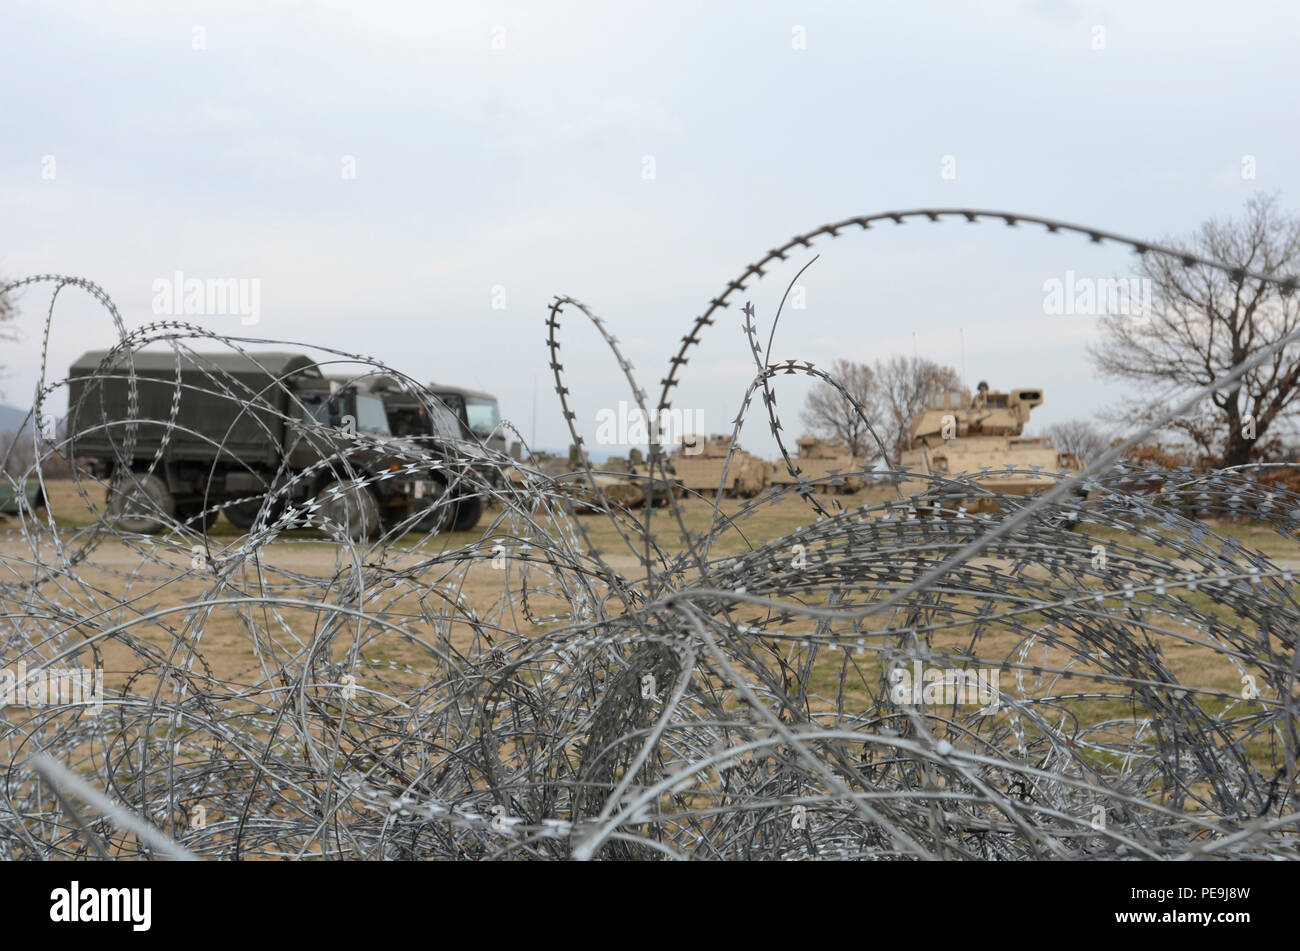 Bulgarian and U.S. Army vehicles park in the open field on the other side of the pile of tangled concertina wire (C-wire) during Exercise Peace Sentinel at Novo Selo Training Center, Bulgaria, Nov. 21, 2015. (Photo by Staff Sgt. Steven M. Colvin/Released) - Stock Image